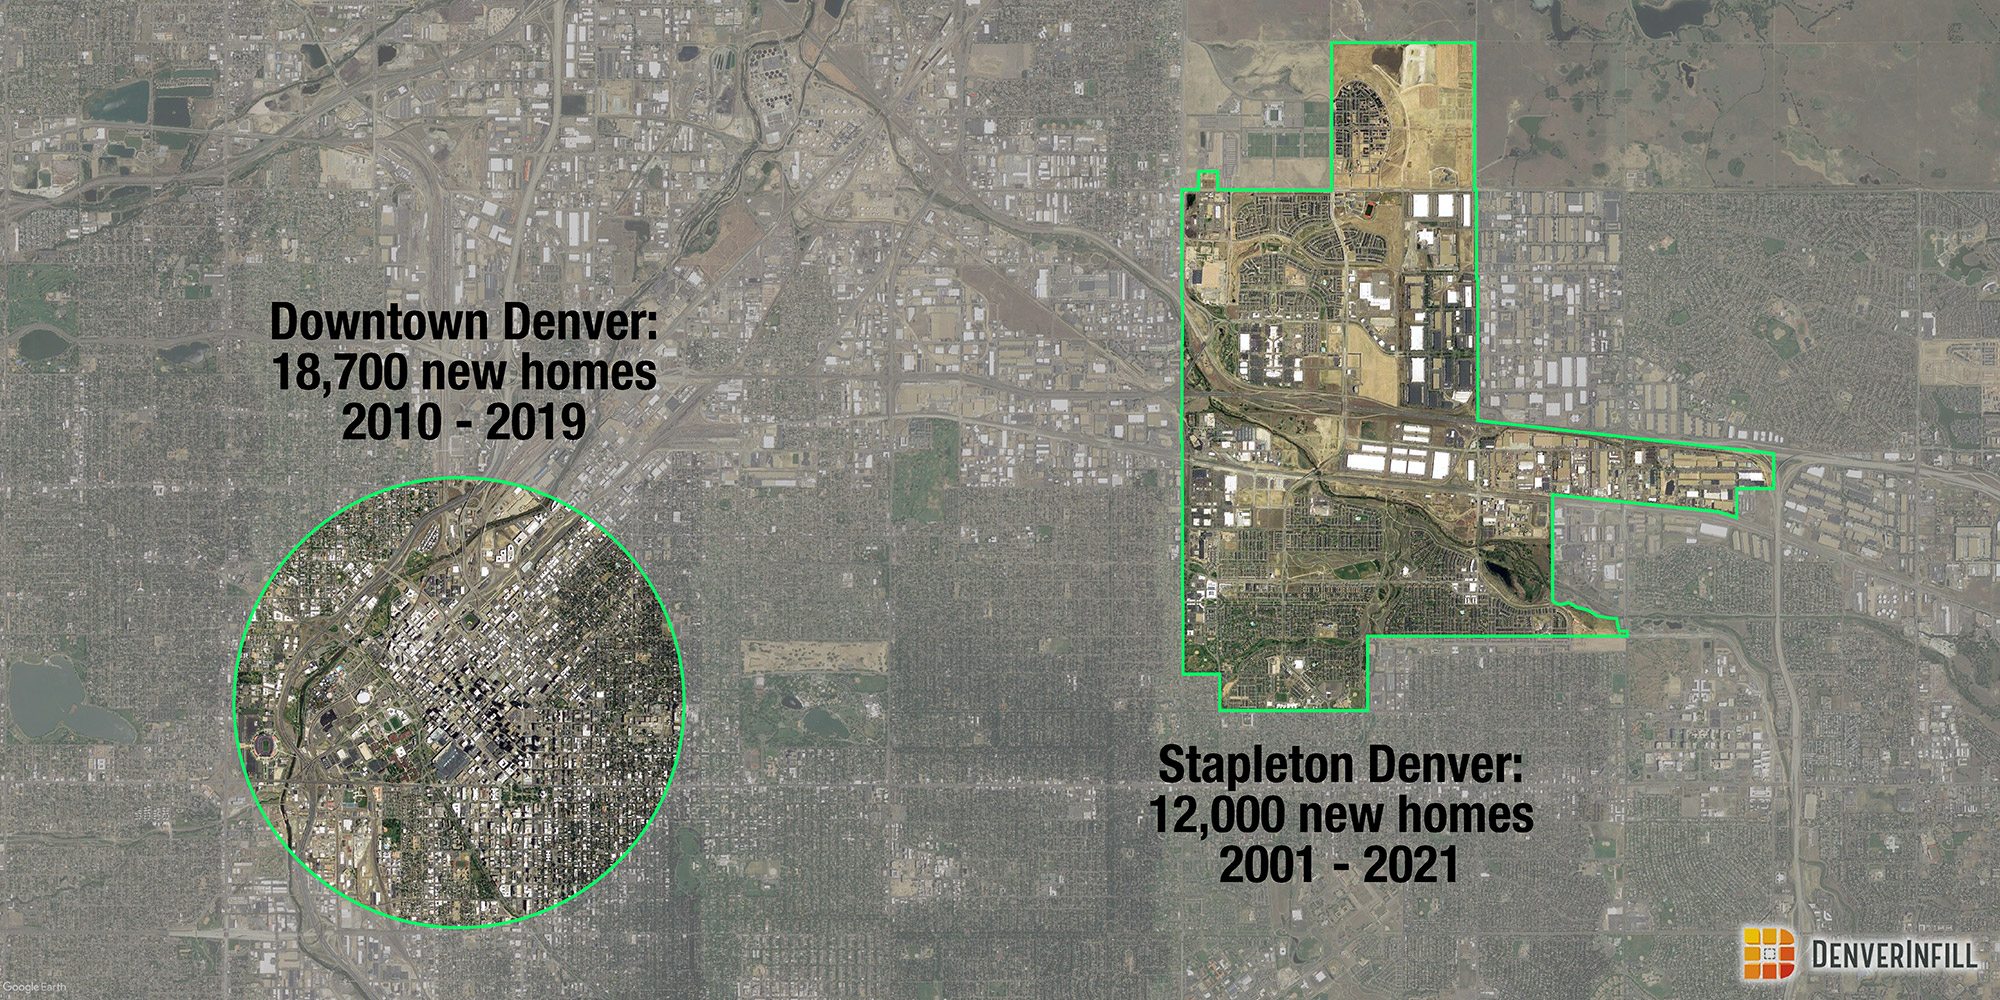 Comparison of housing development in Downtown Denver versus Stapleton Denver.